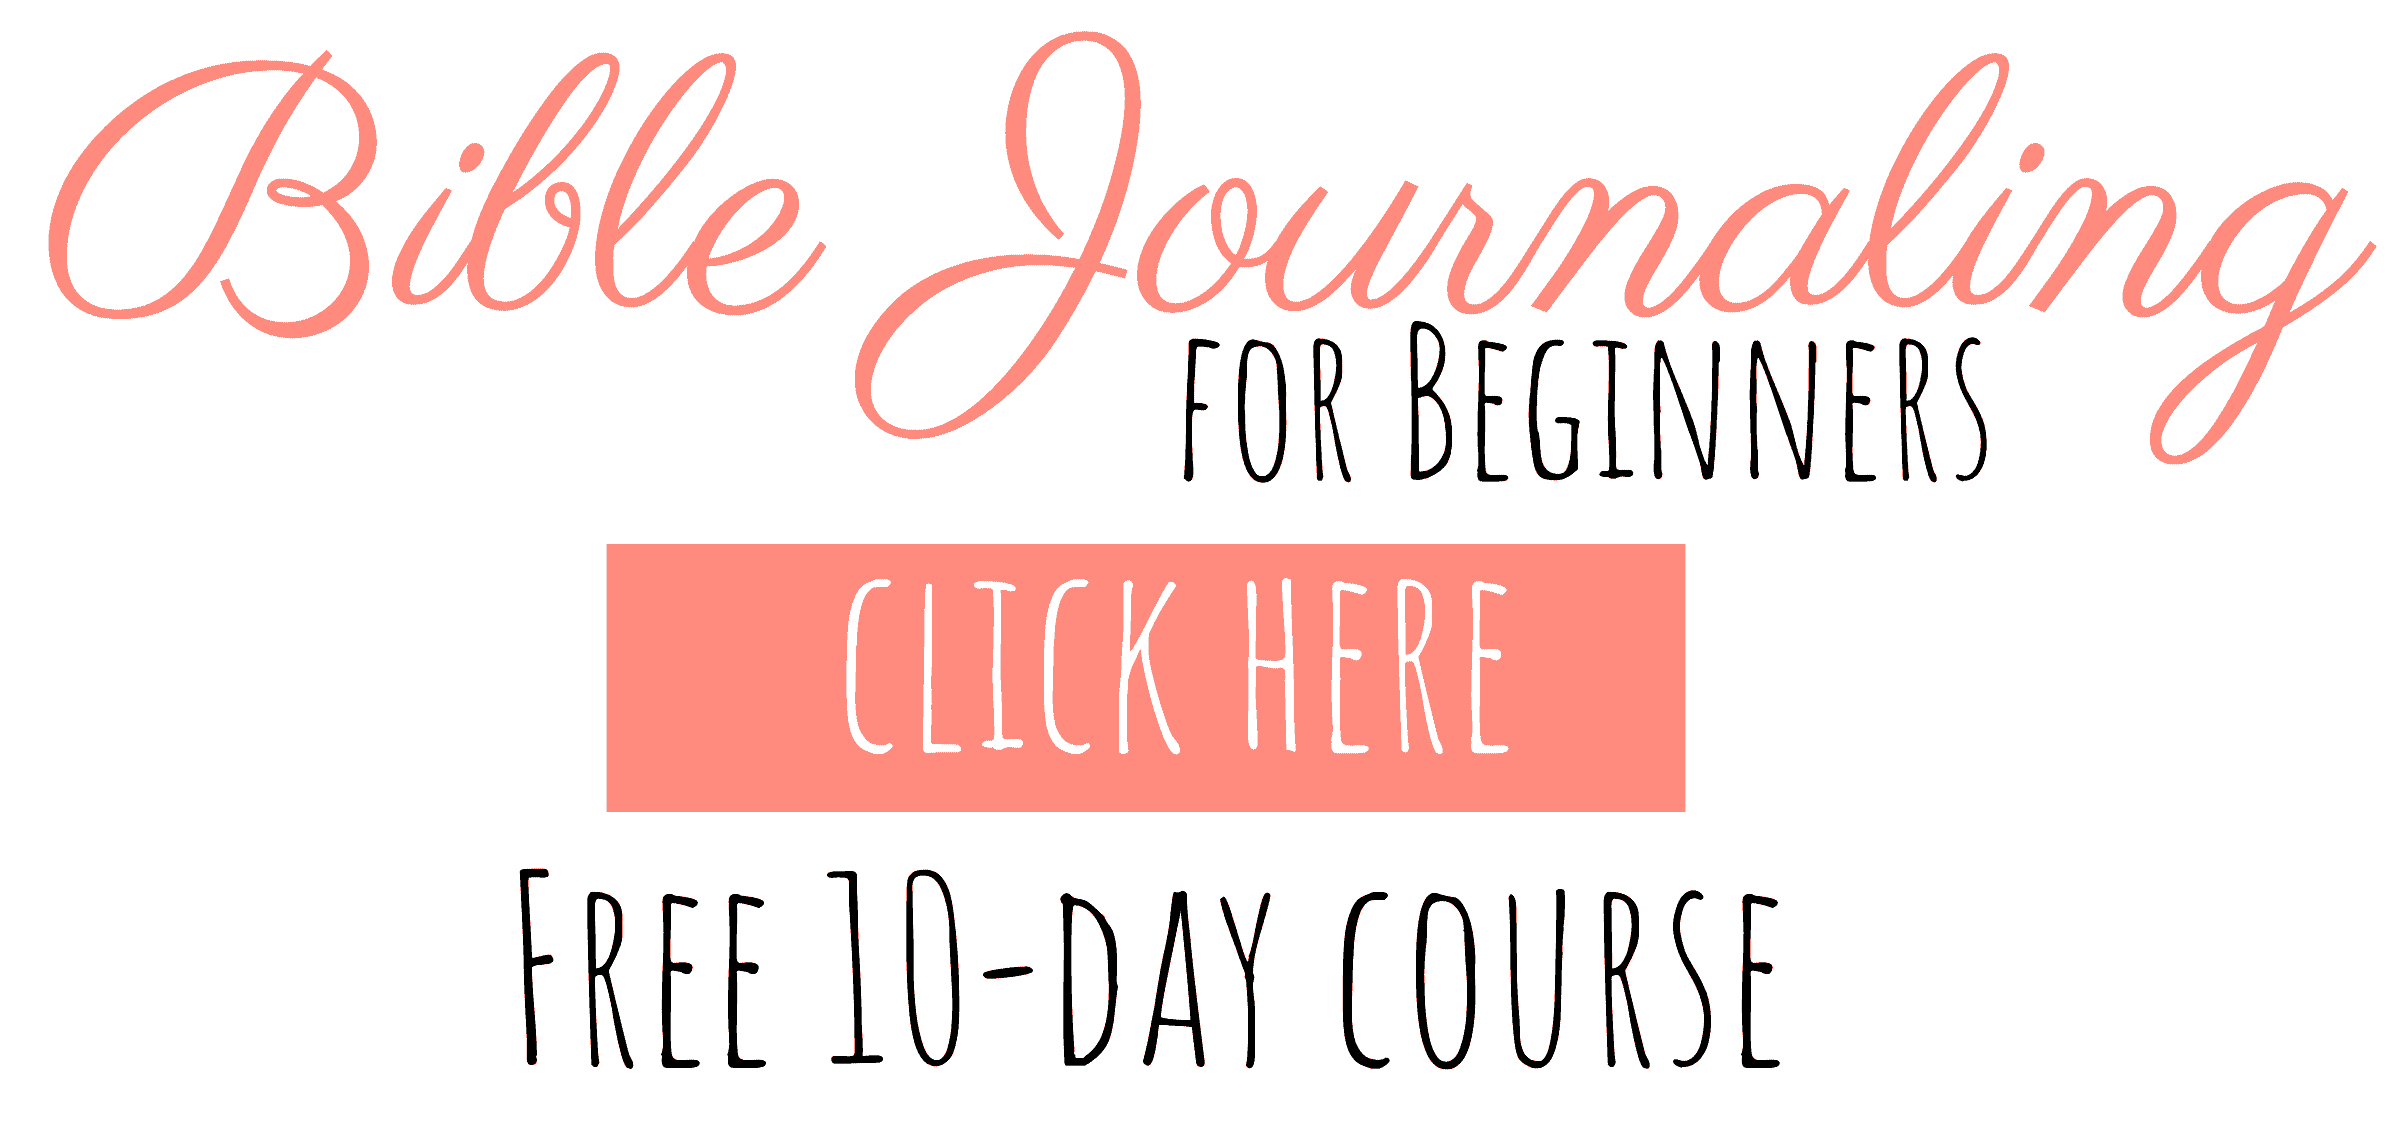 FREE Bible Journaling Course!